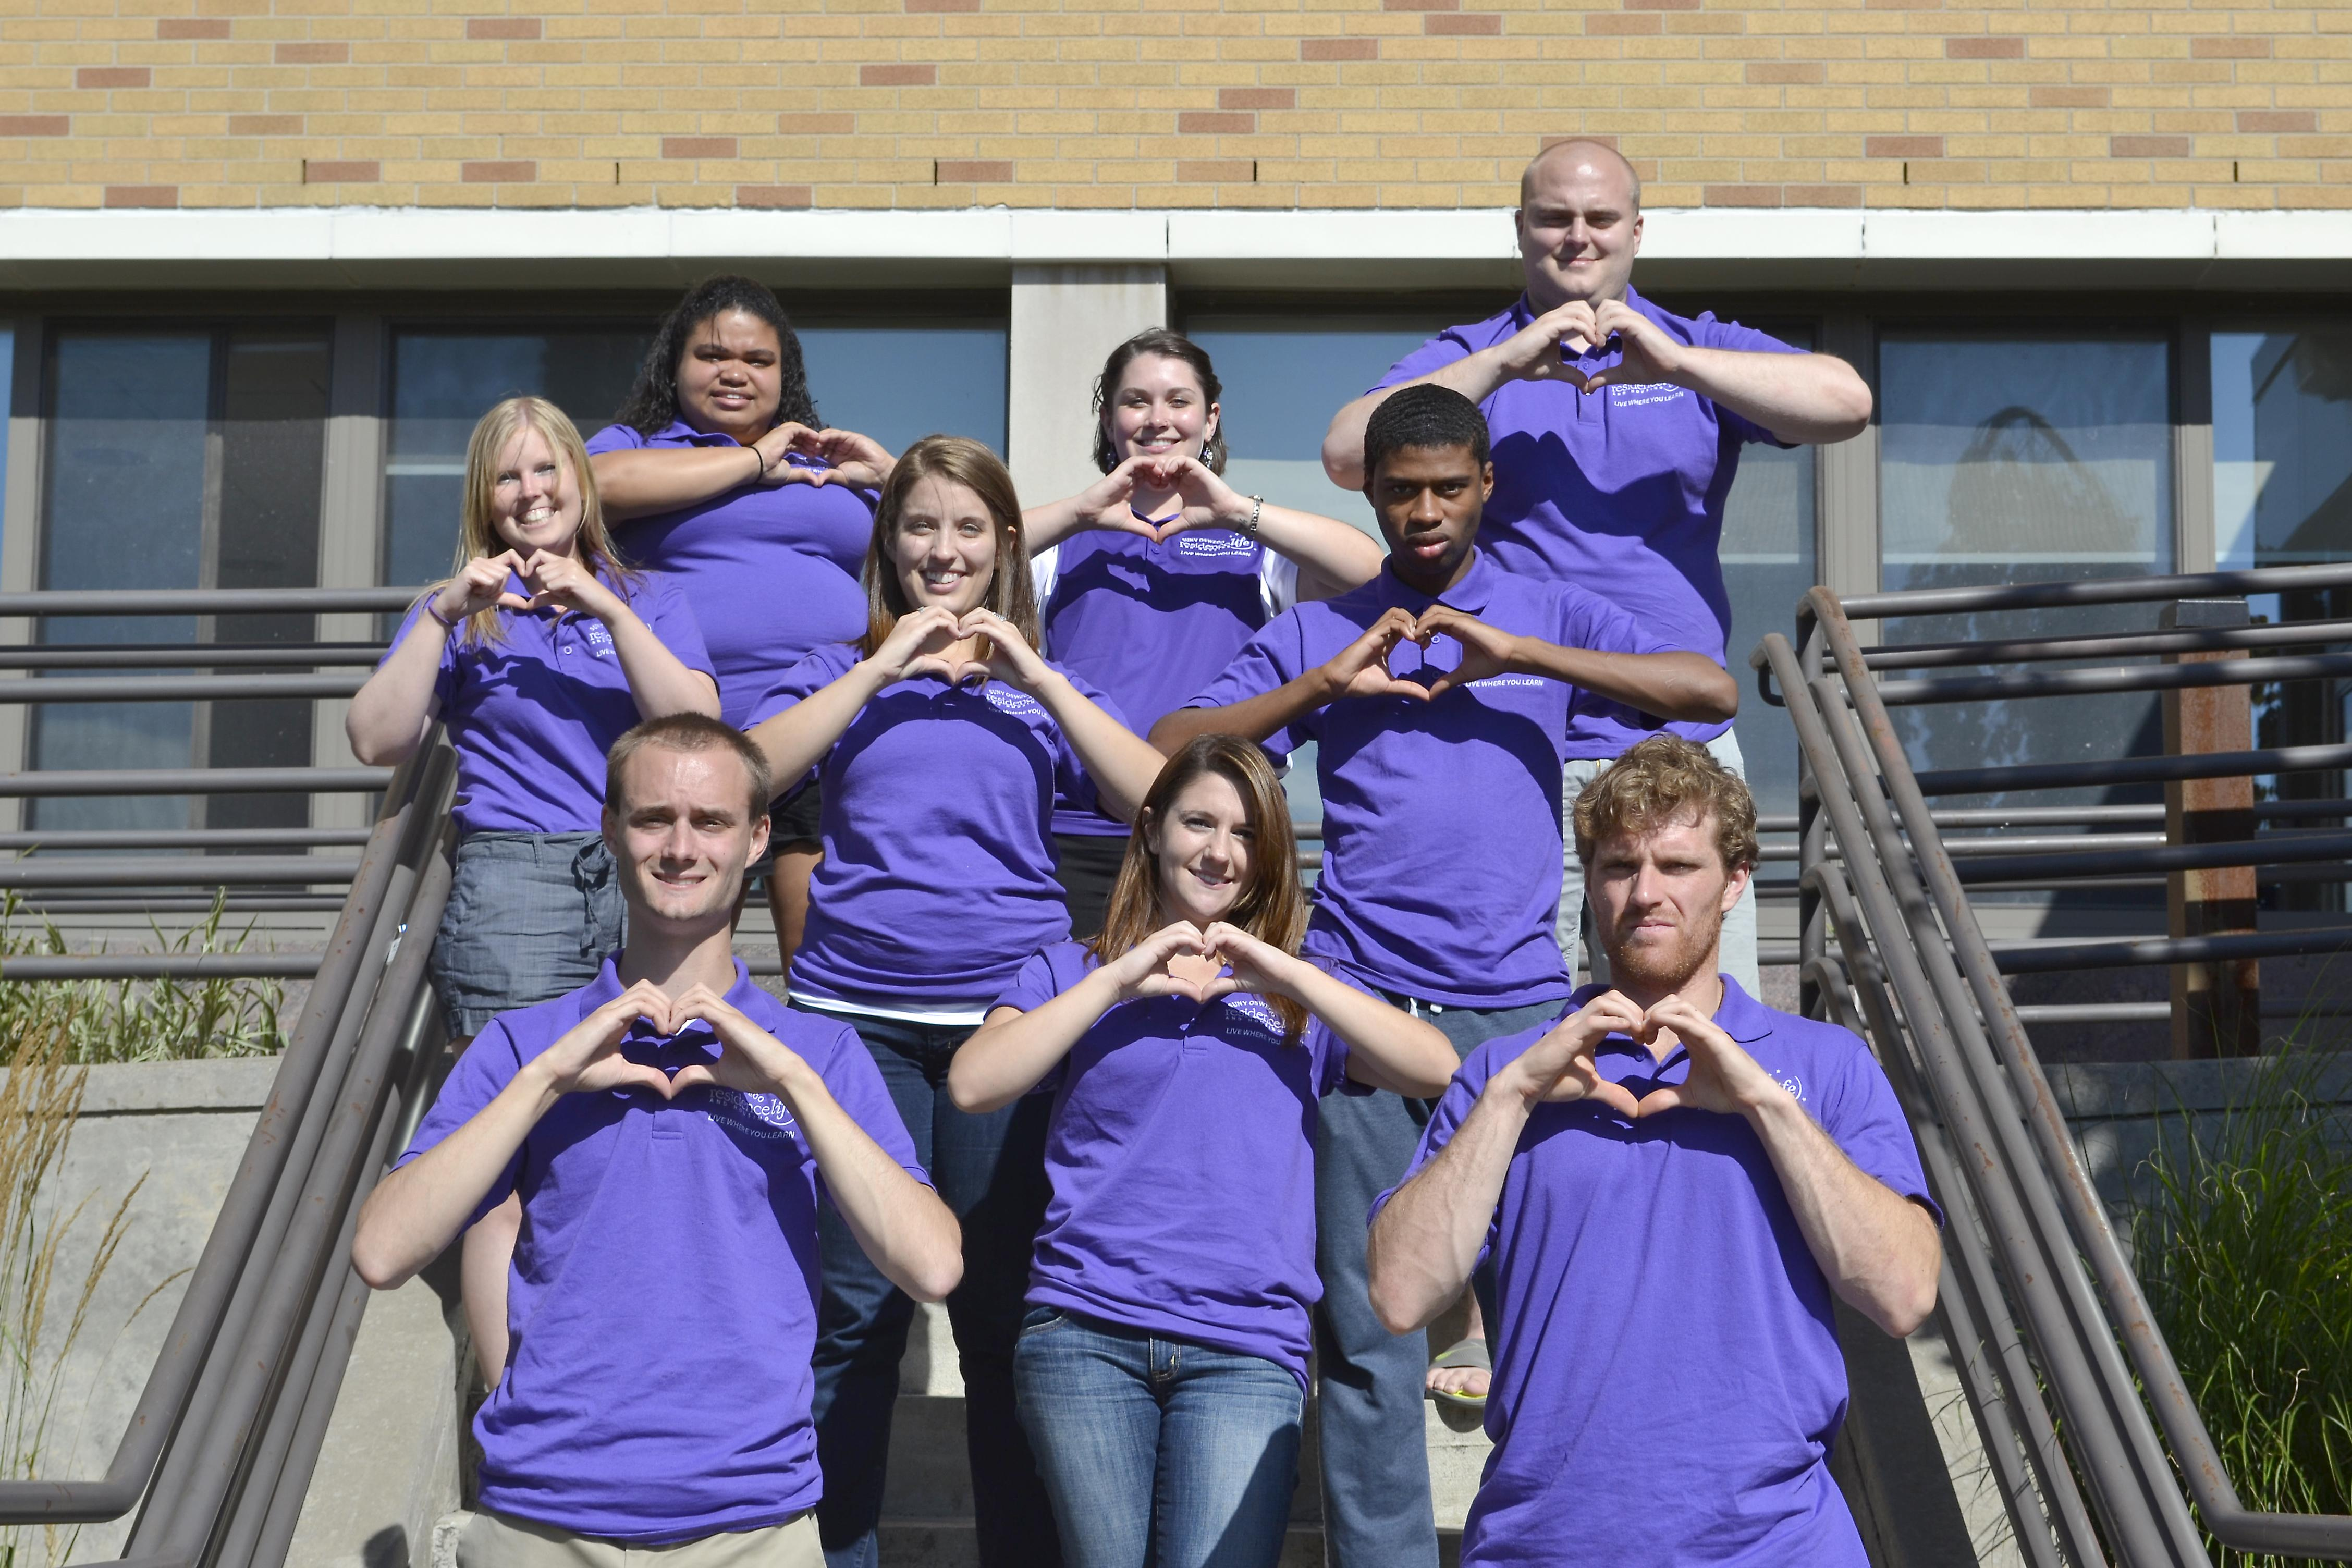 Hart Hall staff